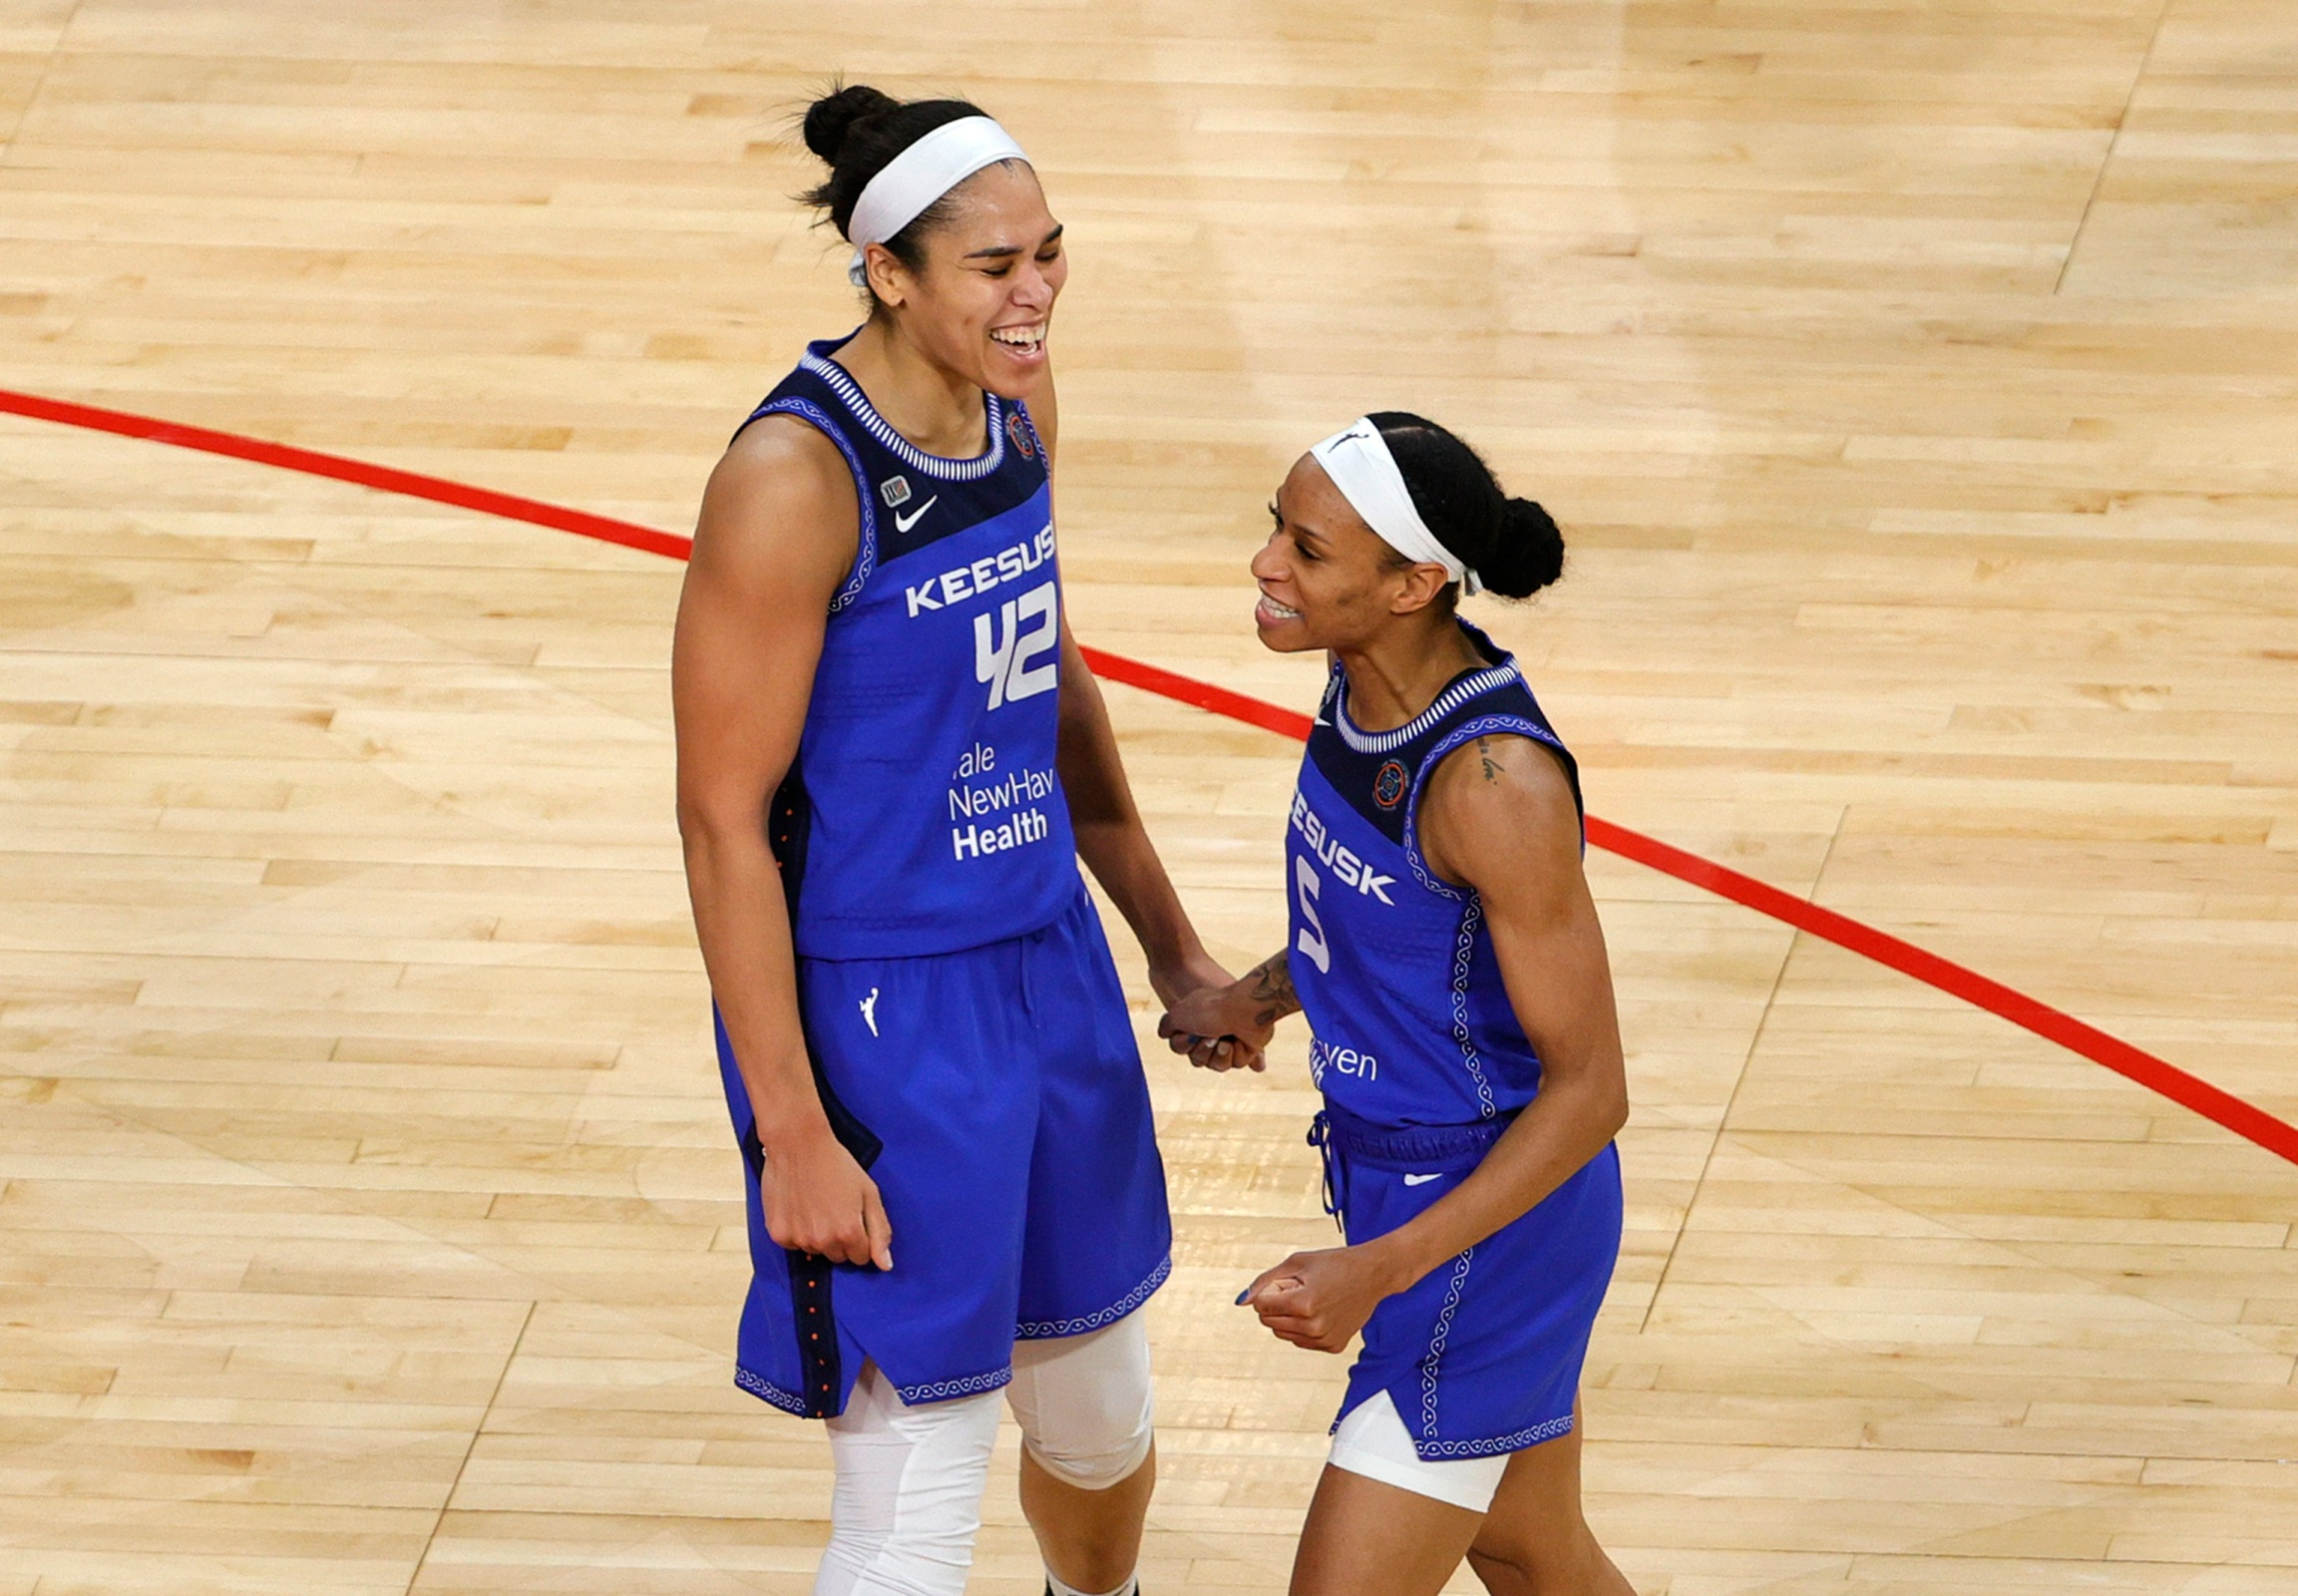 Brionna Jones #42 and Jasmine Thomas #5 of the Connecticut Sun celebrate on the court after Jones scored against the Las Vegas Aces and was fouled during their game at Michelob ULTRA Arena on May 23, 2021 in Las Vegas, Nevada. The Sun defeated the Aces 72-65.